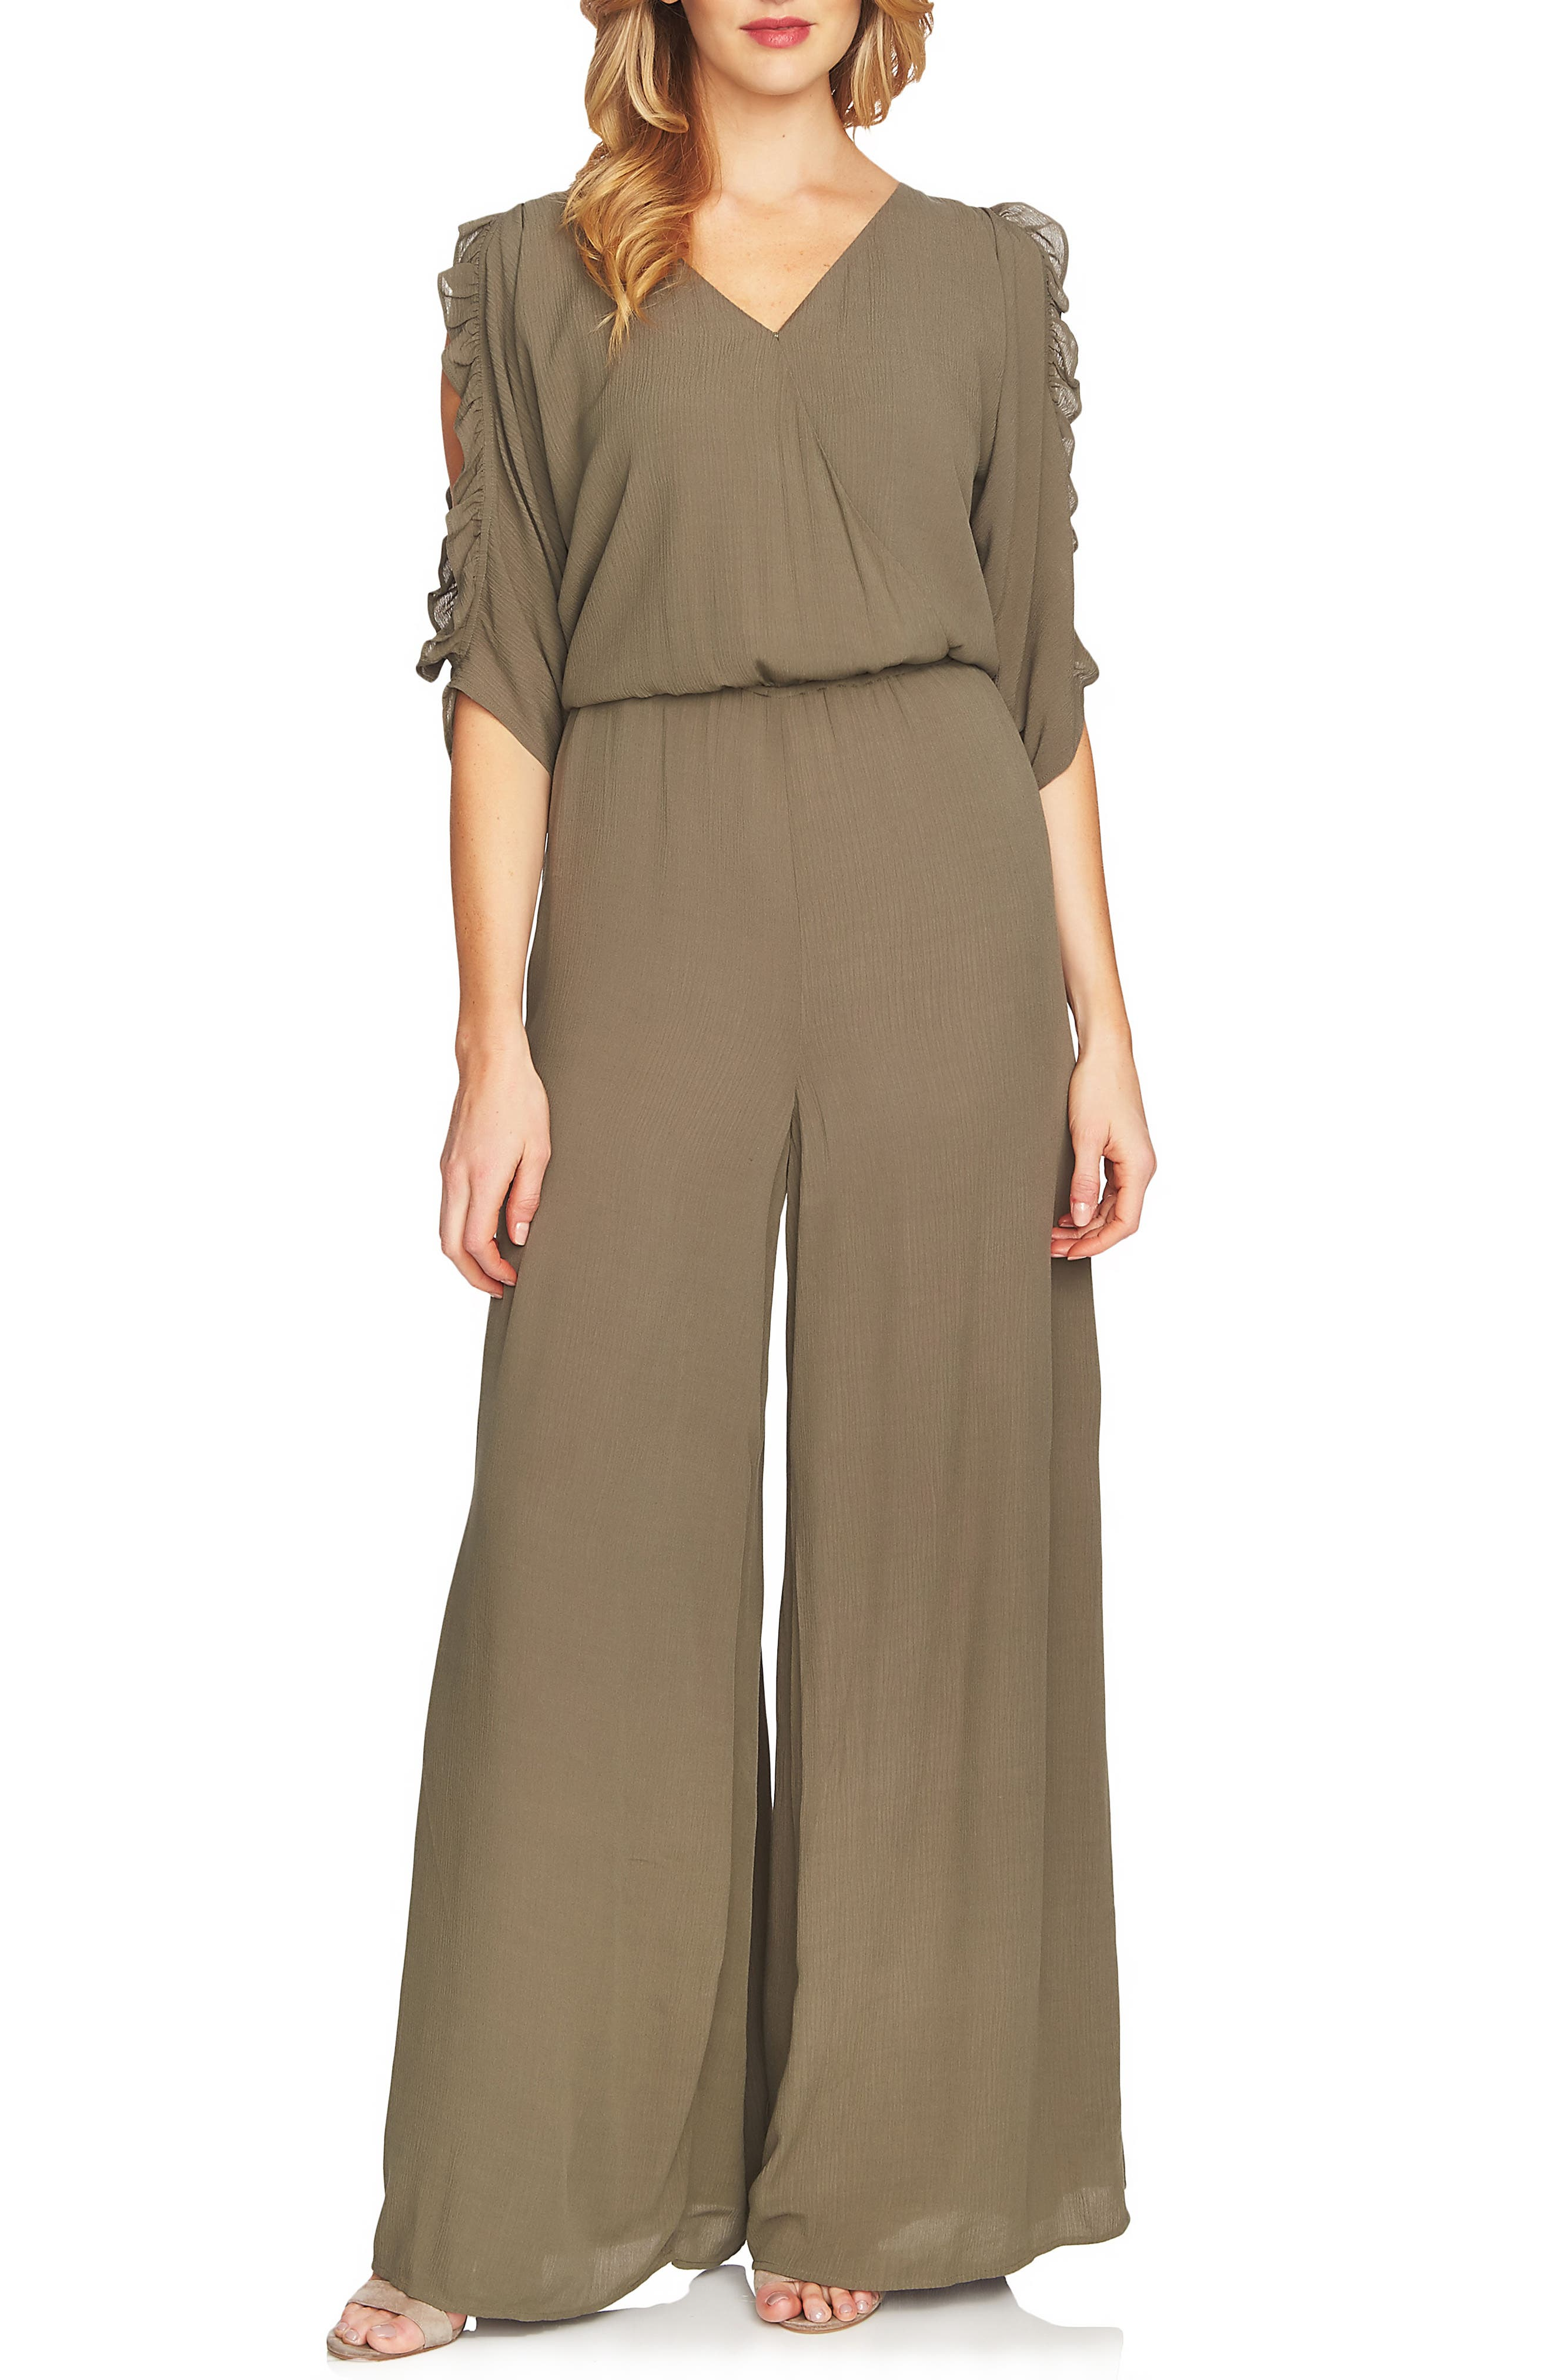 Ruffle Sleeve Wide Leg Jumpsuit,                         Main,                         color, Dusty Olive